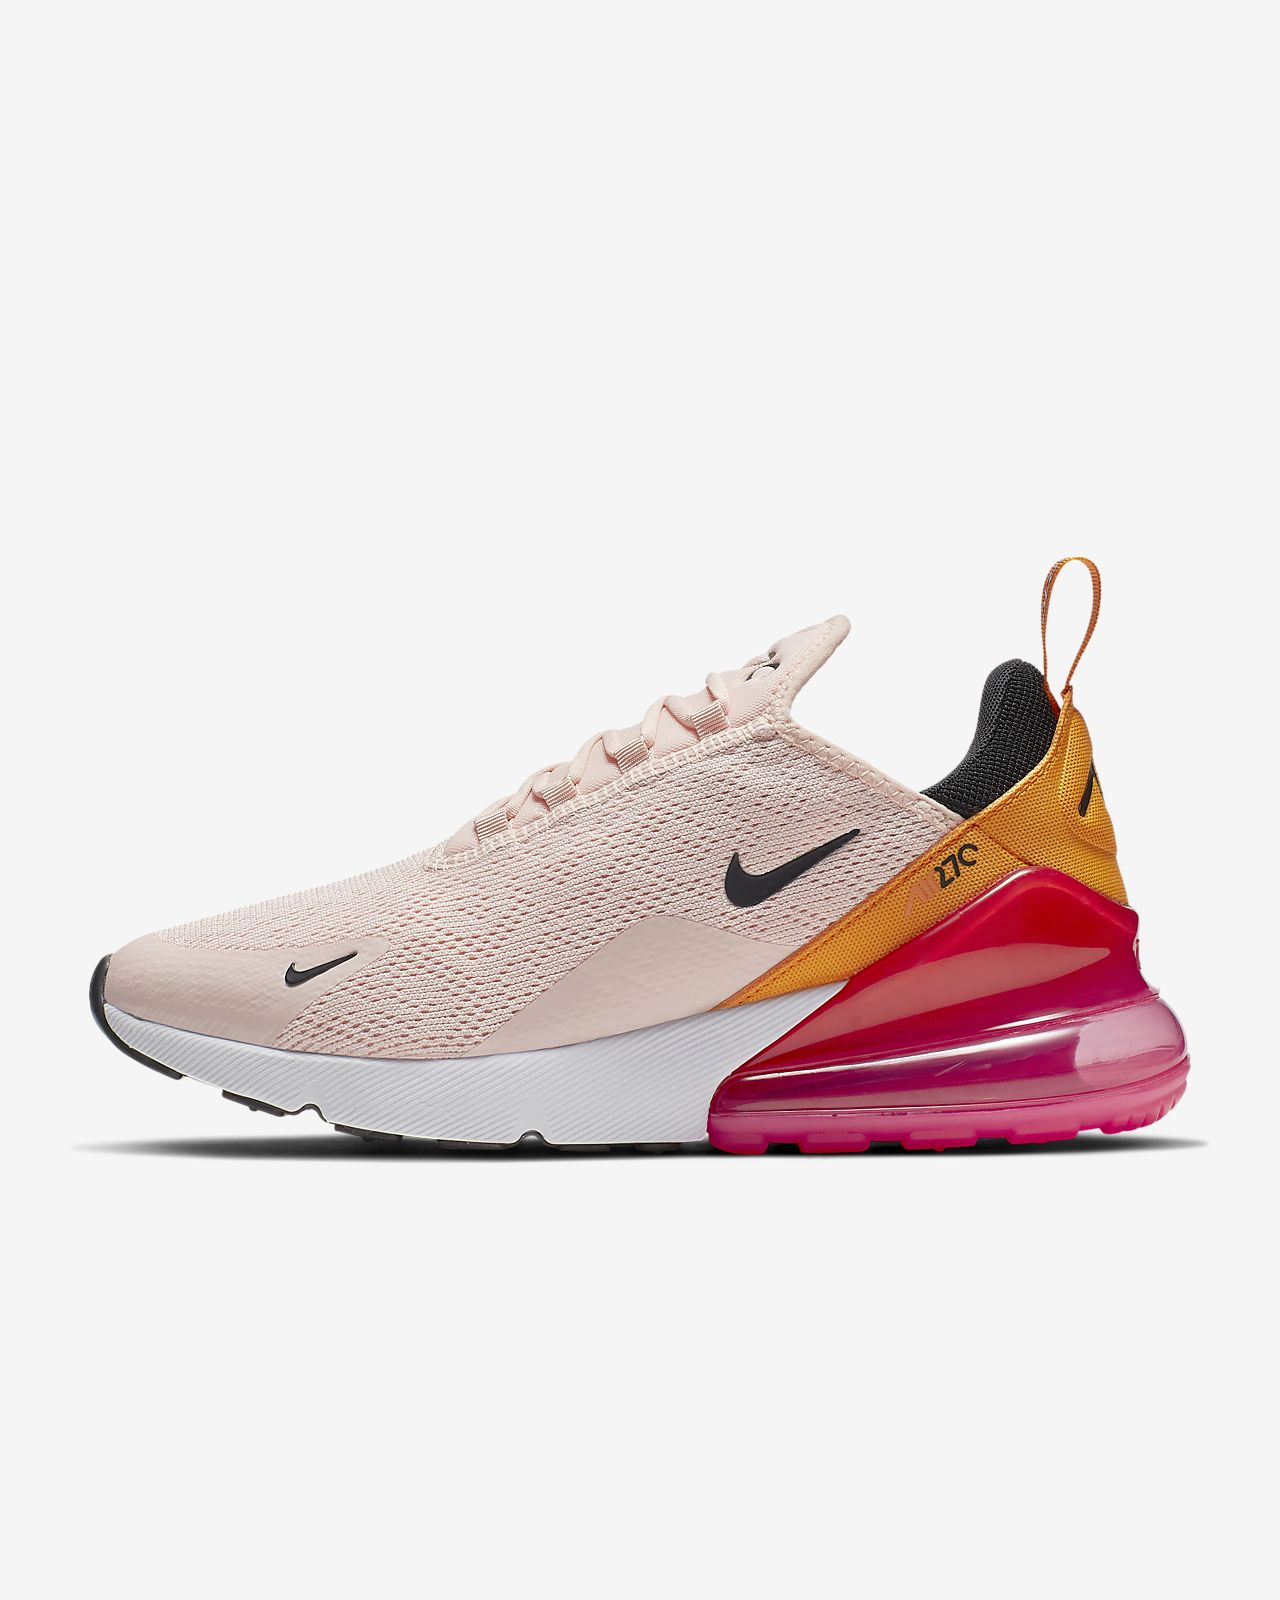 Air Max Nike Femme Nike Air Max 270 Couple Chaussure Air Max